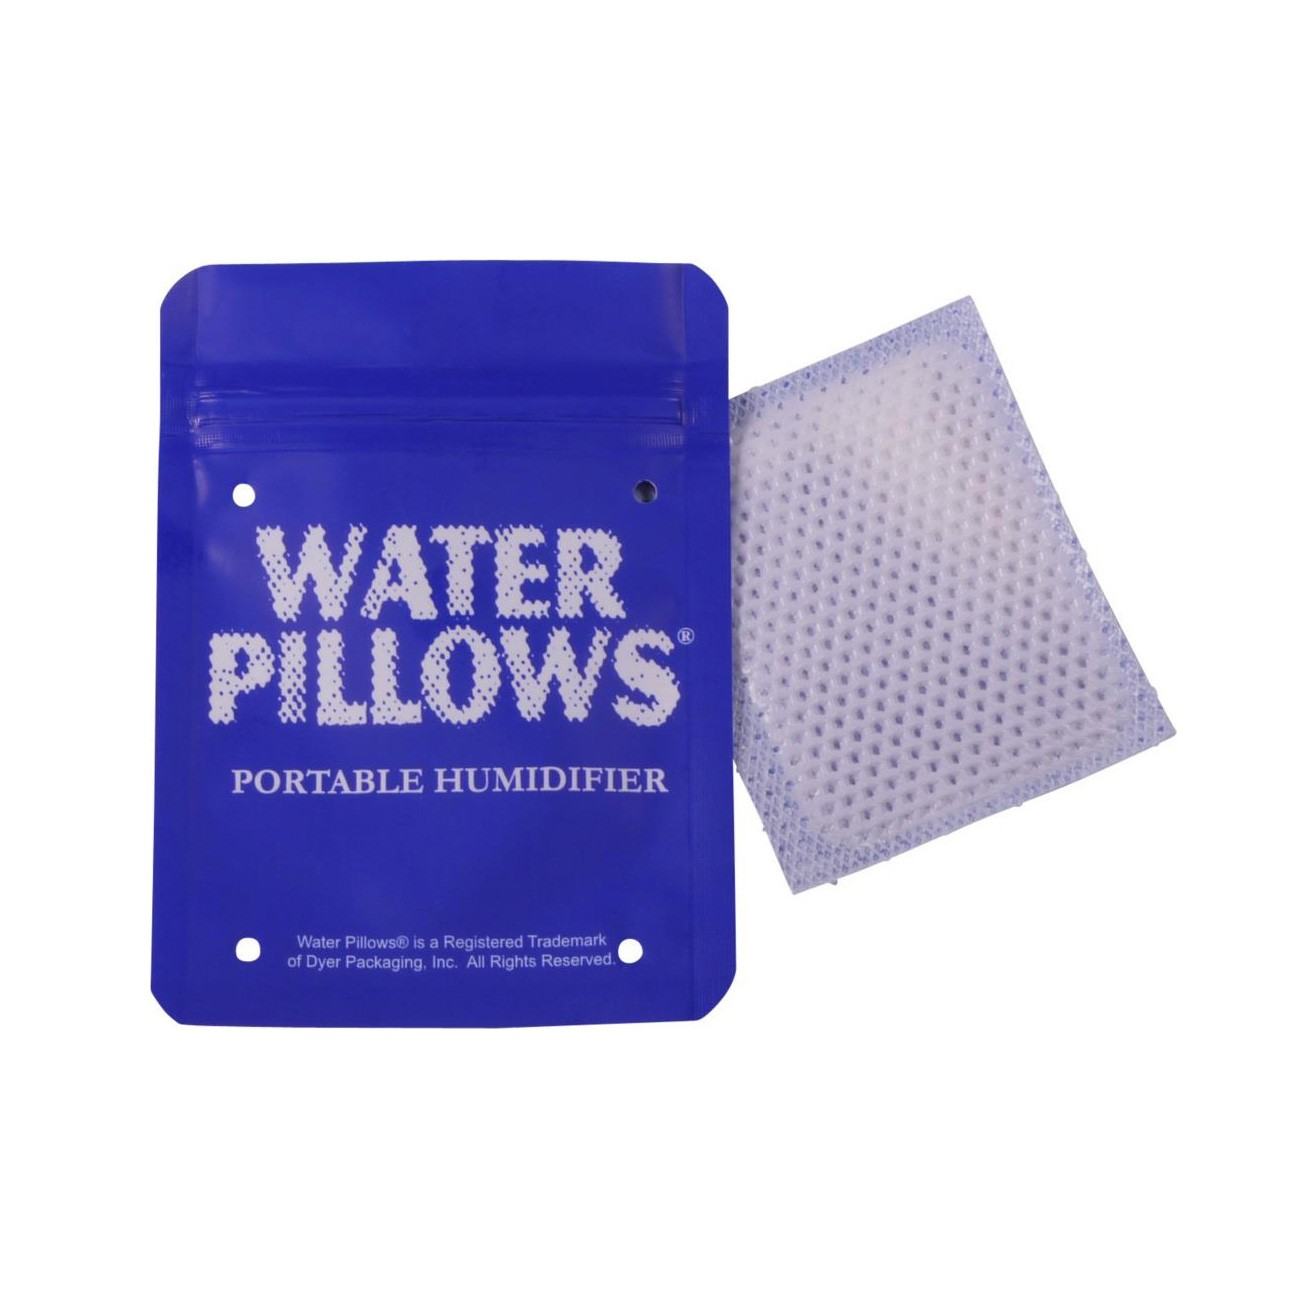 """Humidification system """"Water Pillows""""6.5x5.5cm"""